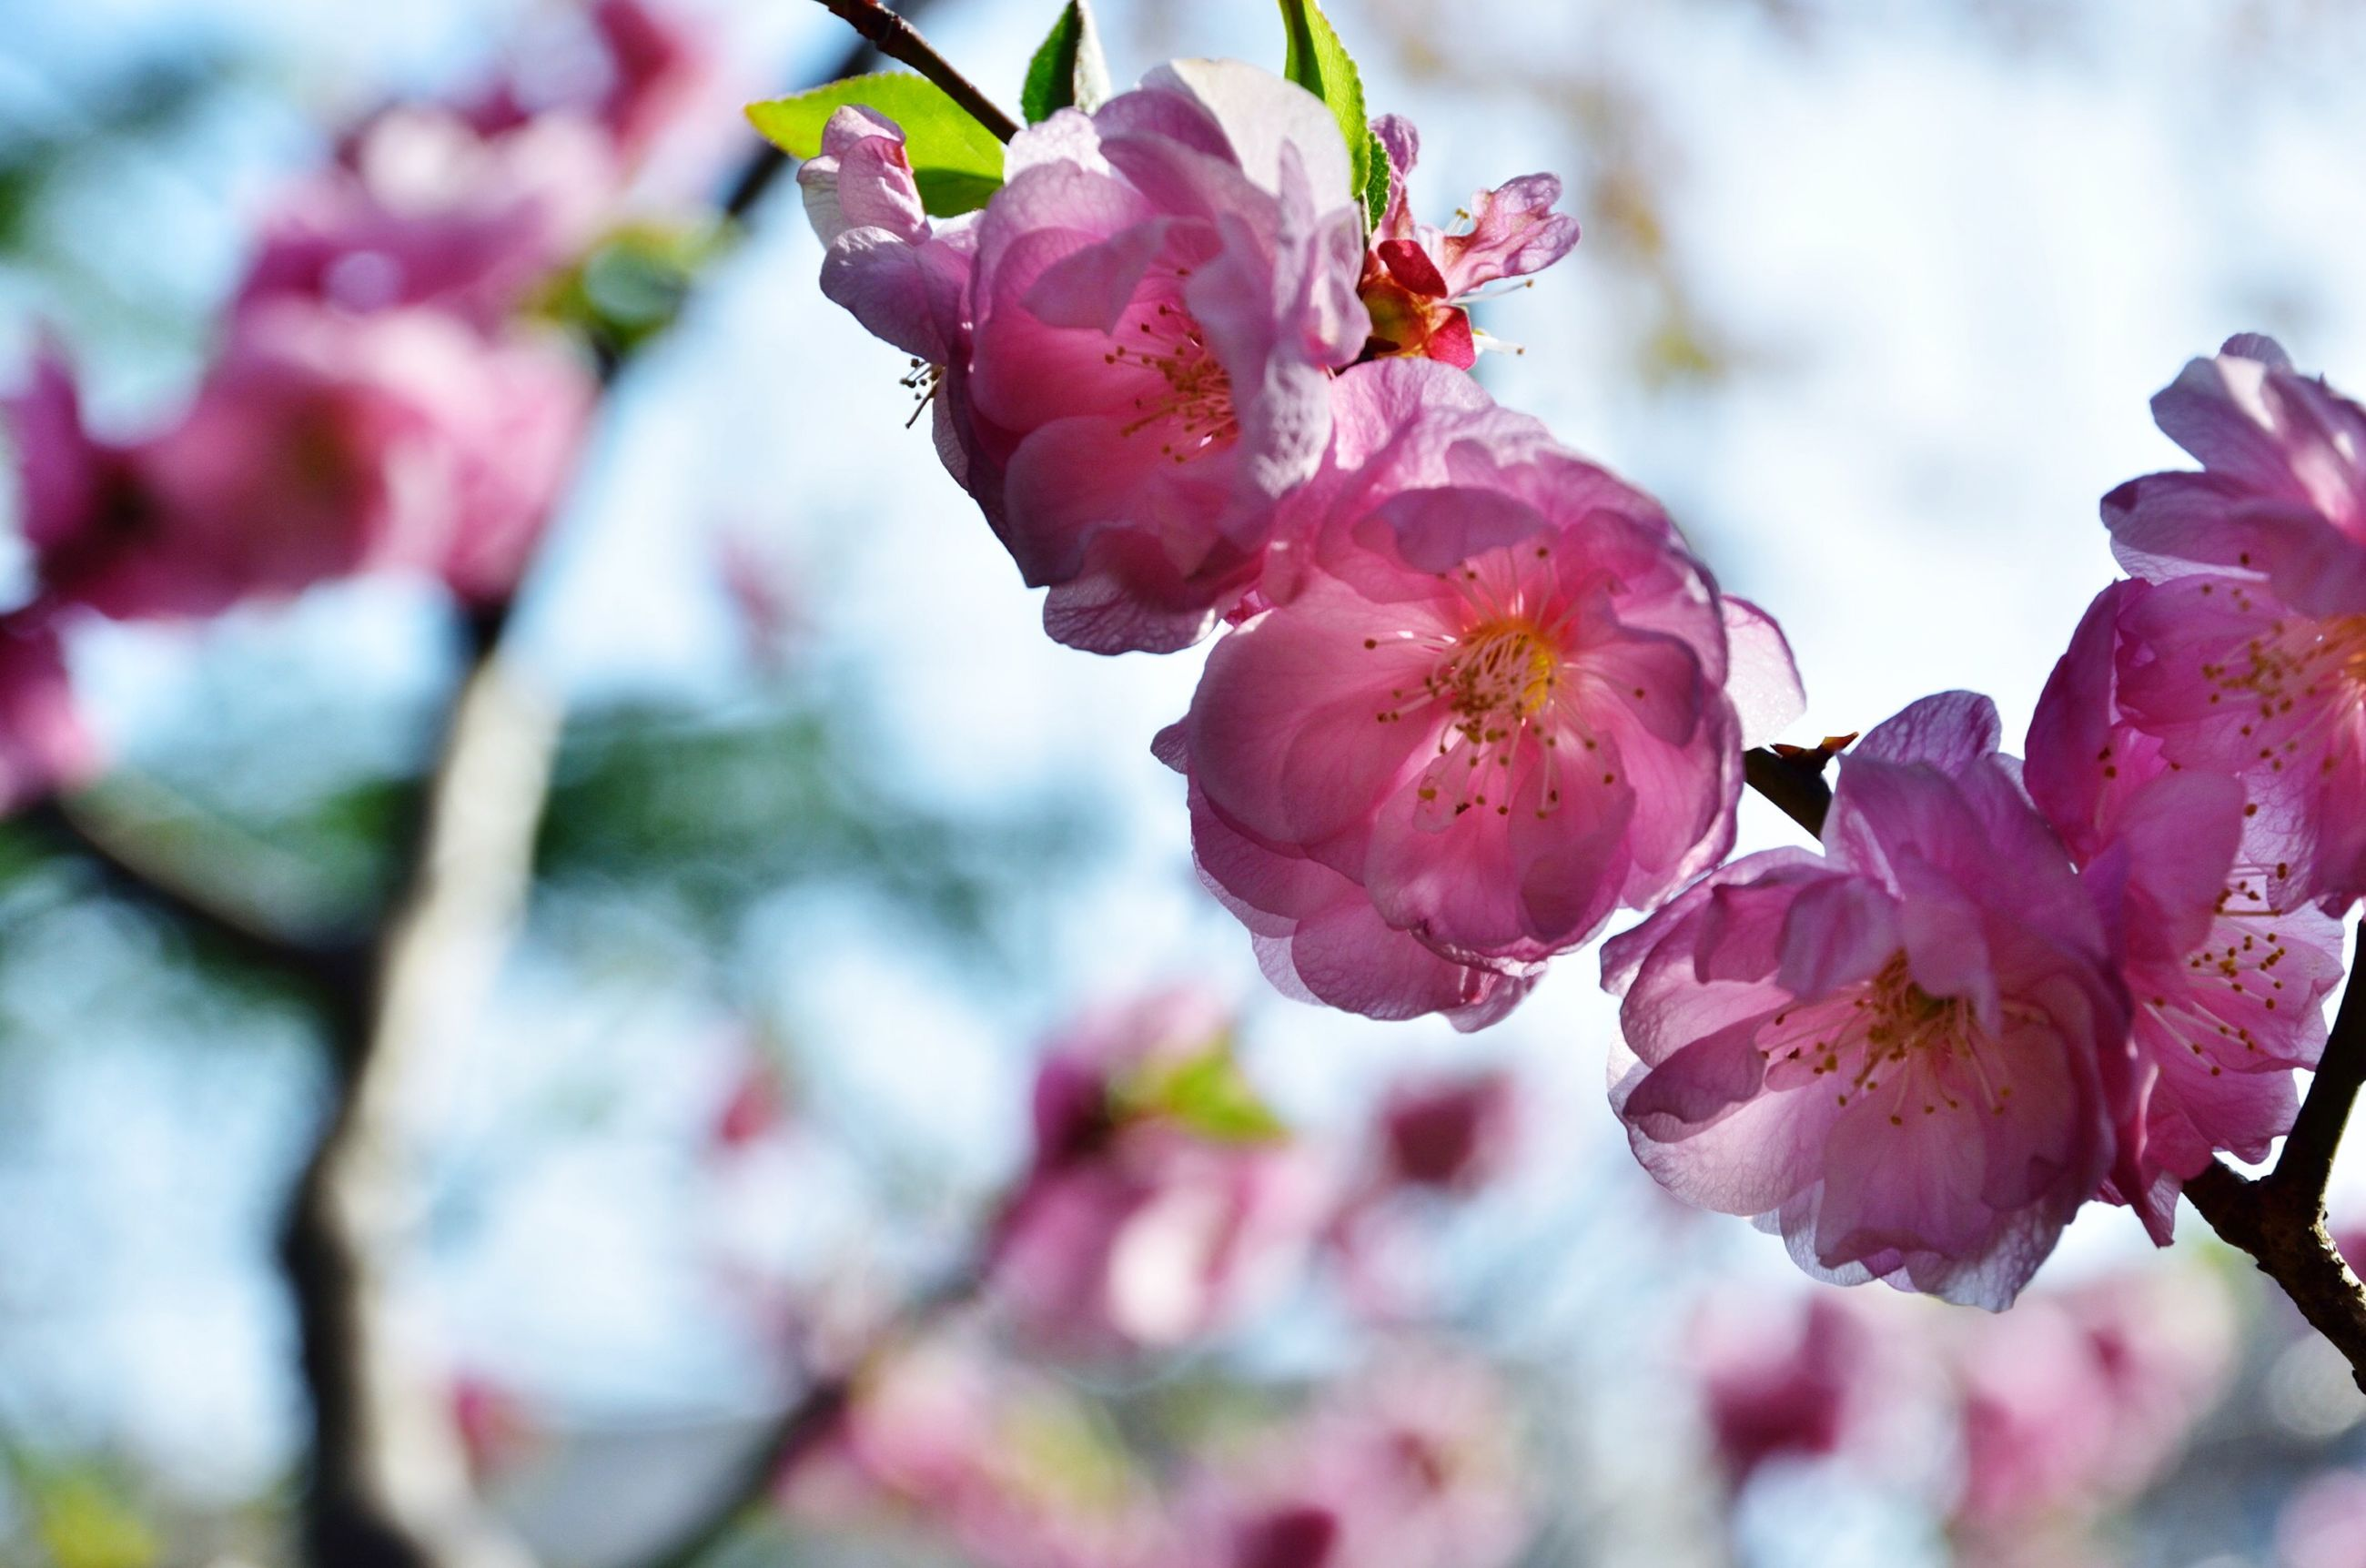 flower, freshness, pink color, fragility, branch, growth, cherry blossom, beauty in nature, tree, petal, focus on foreground, close-up, nature, cherry tree, blossom, pink, blooming, in bloom, springtime, twig